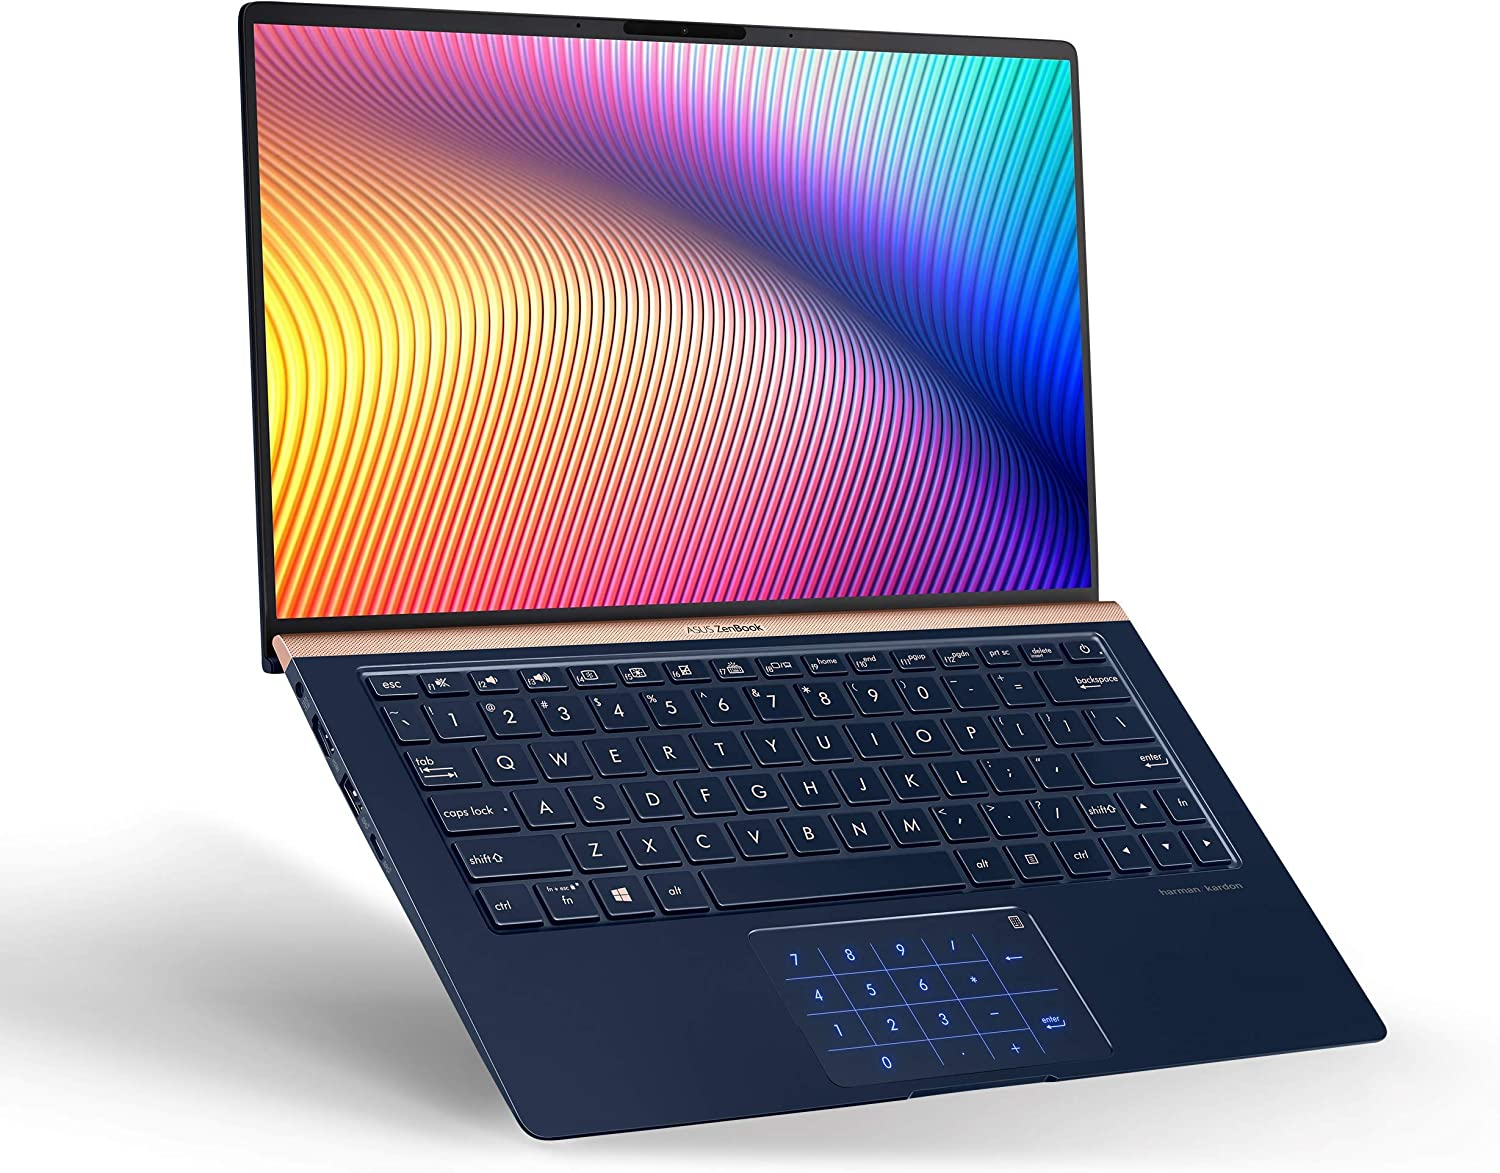 ASUS ZenBook 13, 13.3 in FHD Wideview, Intel Core i7-8565U Up to 4.6GHz, 16GB RAM, 512GB PCIe SSD